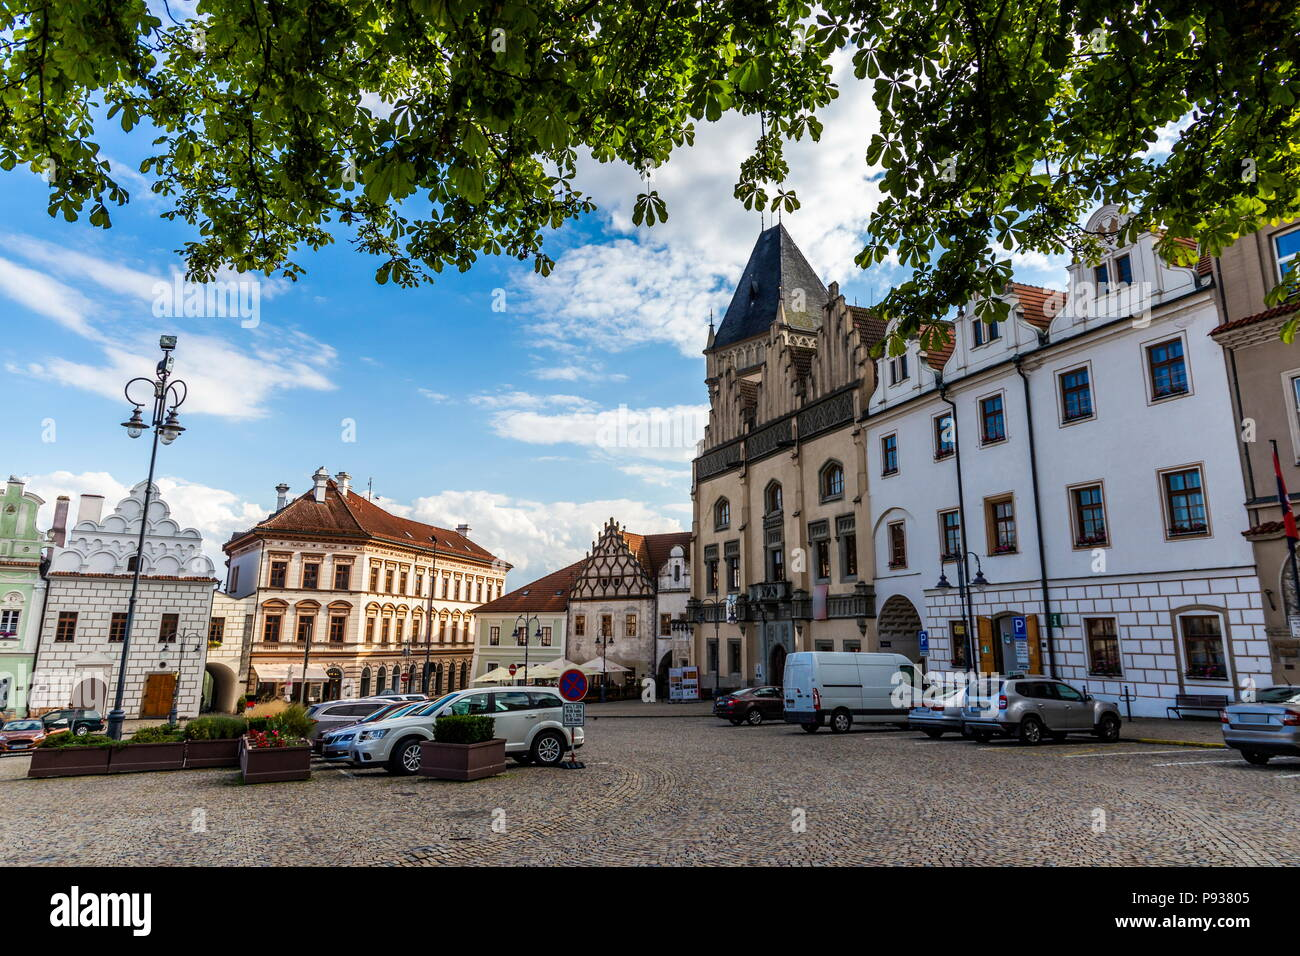 Tabor is a small town in South Bohemian region, Czech republic. - Stock Image